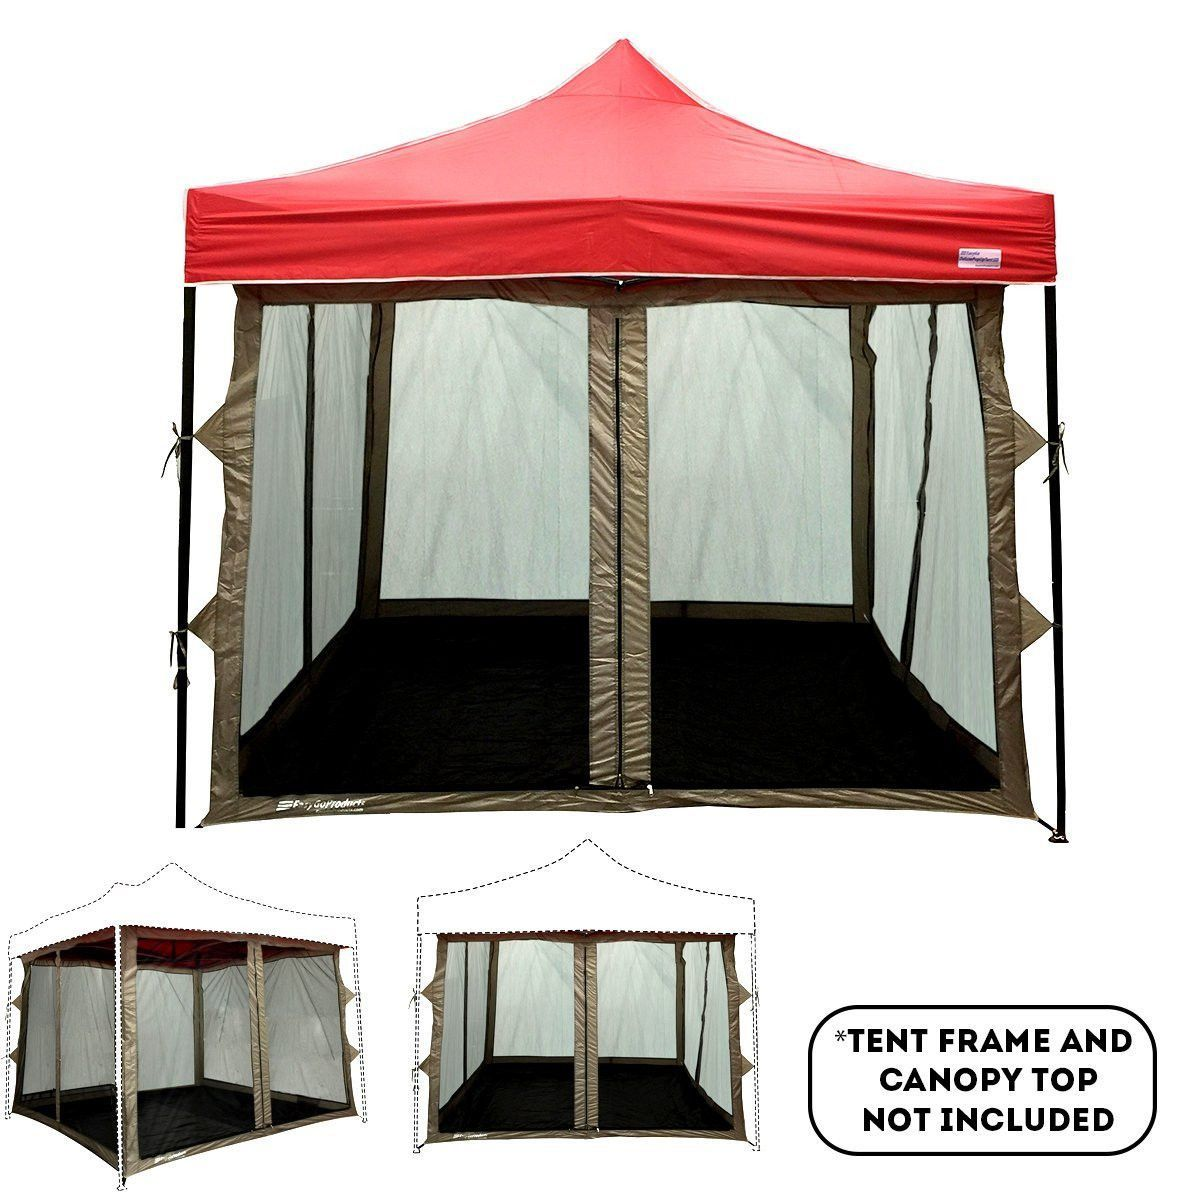 Inner Pop Up Tent Zippered Entry Full Mesh Walls Pvc Floor